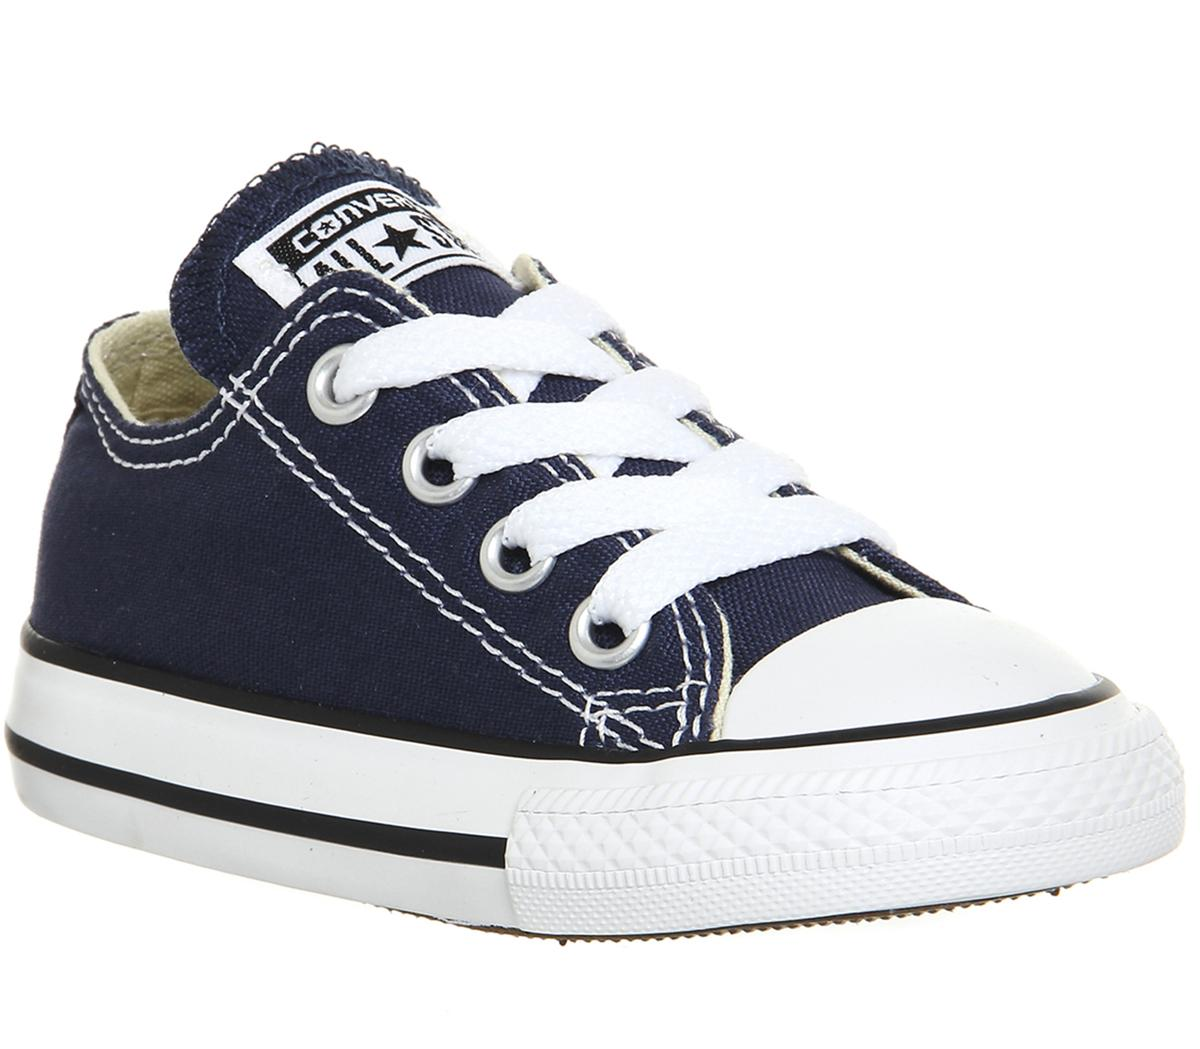 All Star Low Infant Shoes